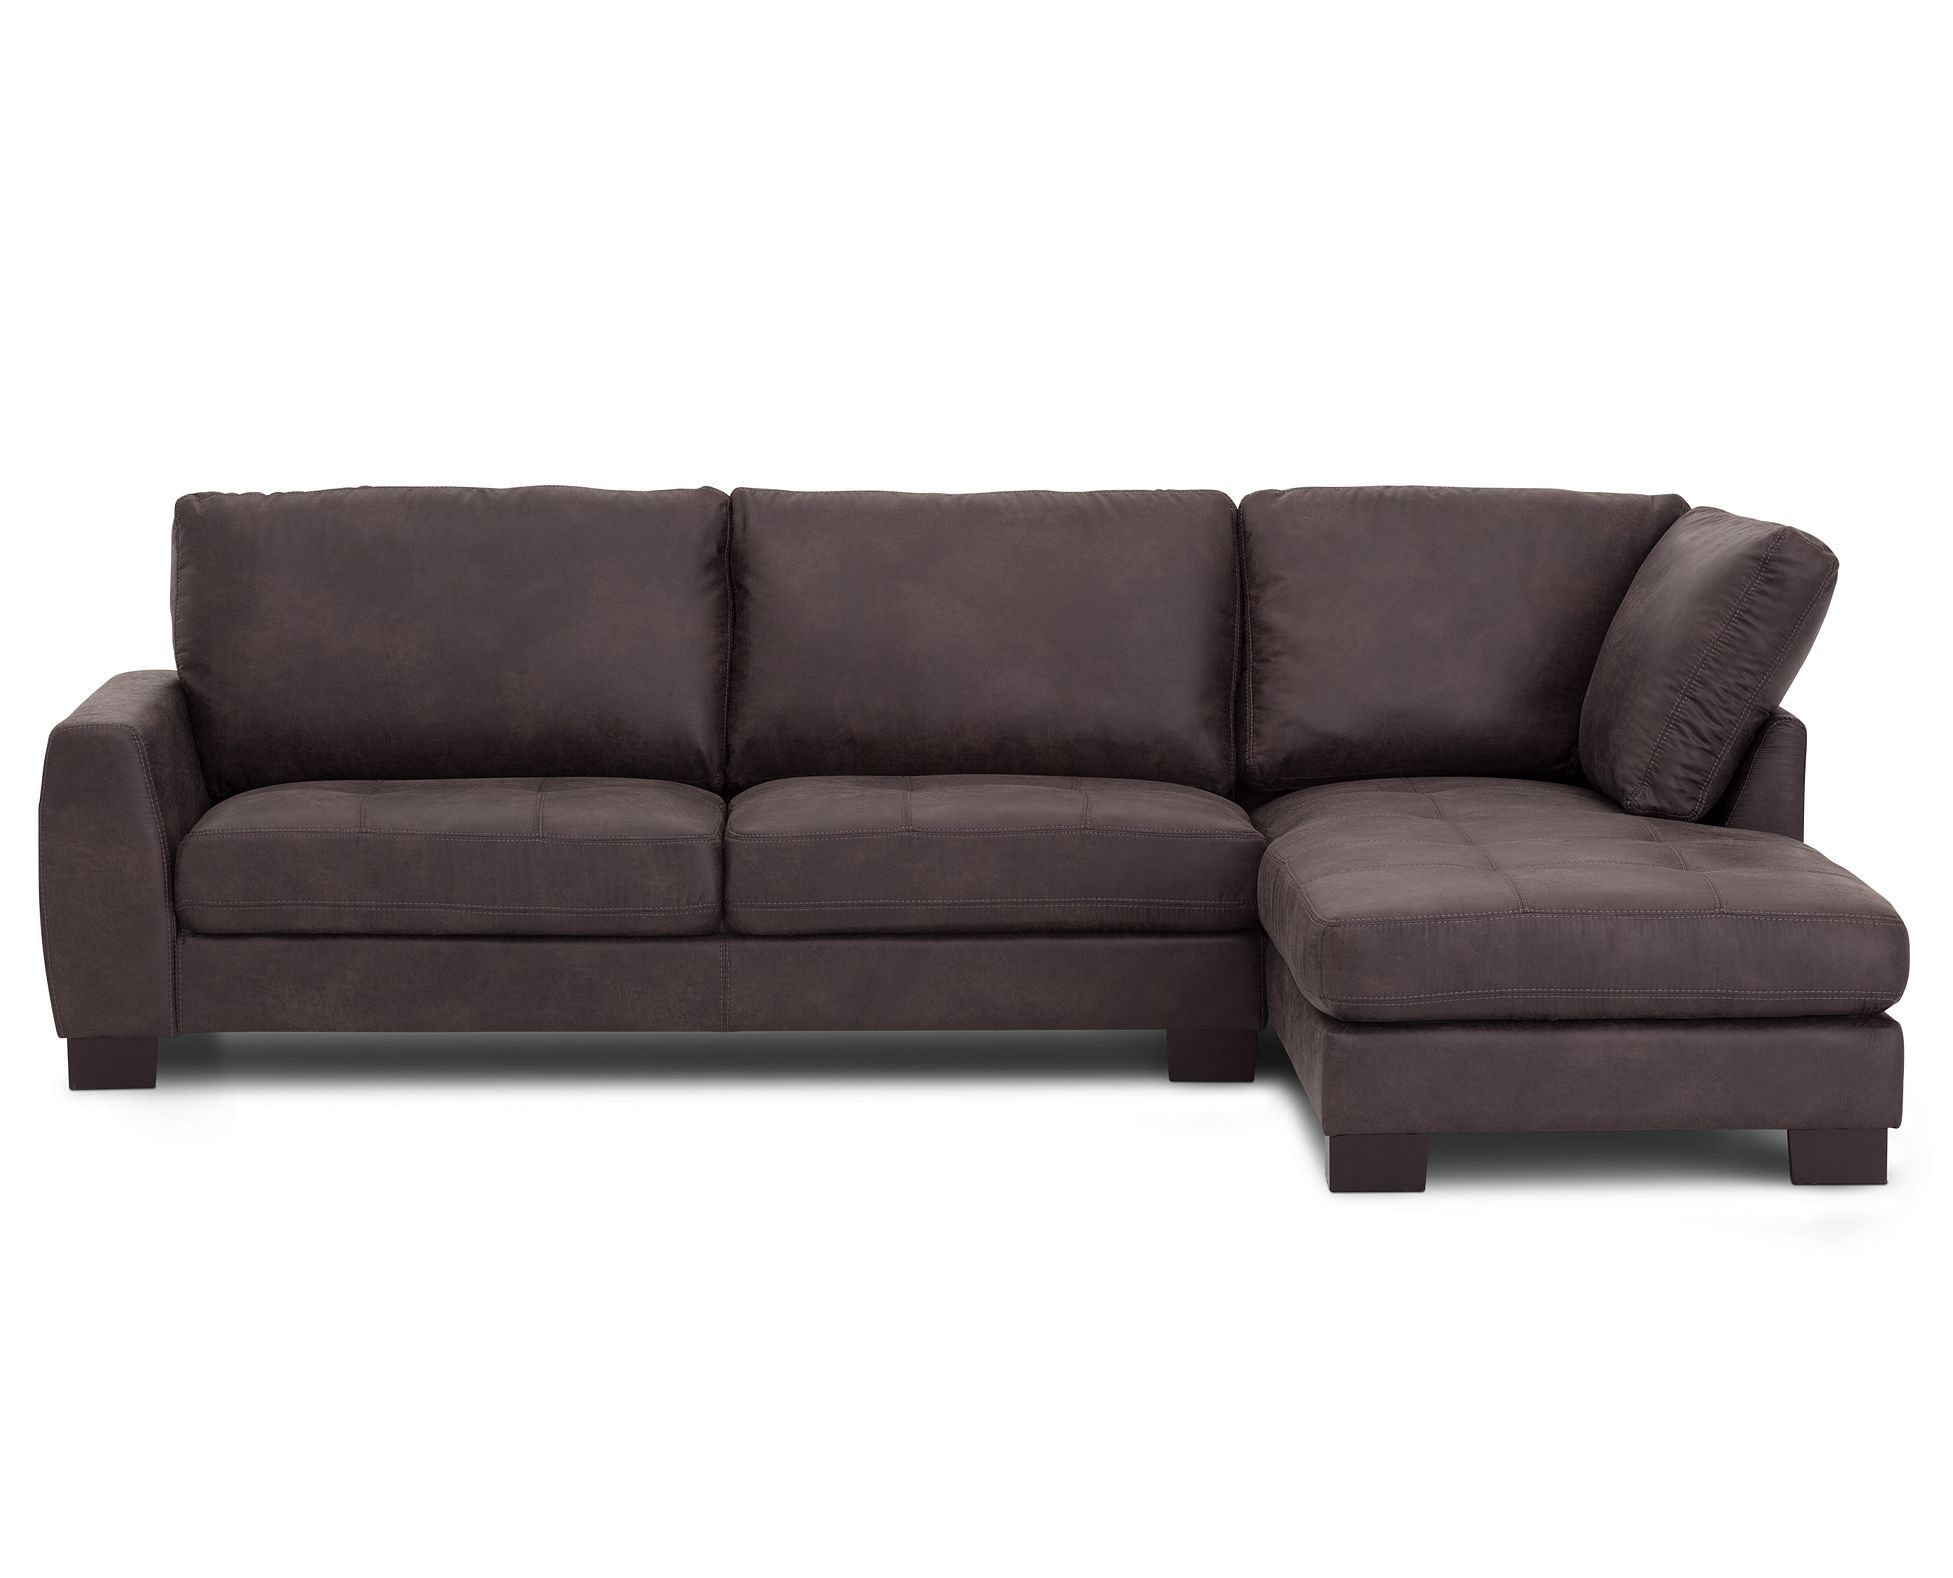 Apartment Sectional Polaris 2 Pc Chaise Sectional Living Room Sectional Furniture